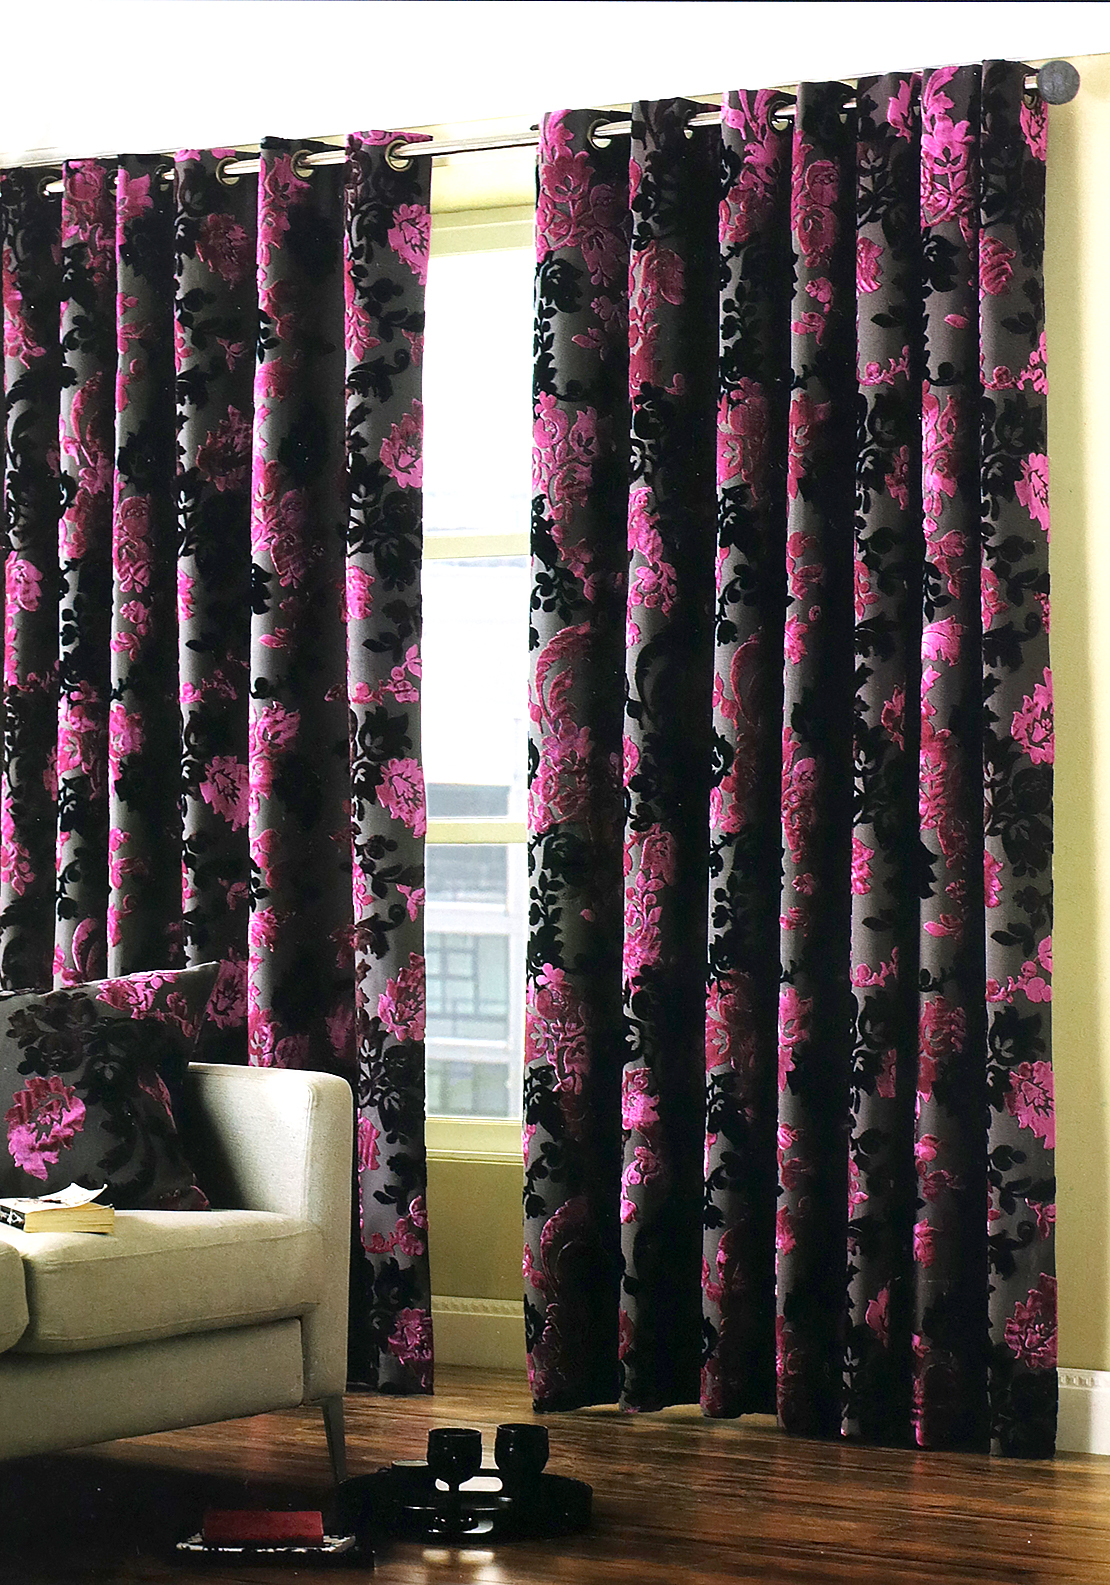 "Paoletti Fairmount Floral Print Fully Lined Eyelet Curtains 90""x90"", Fuschia"